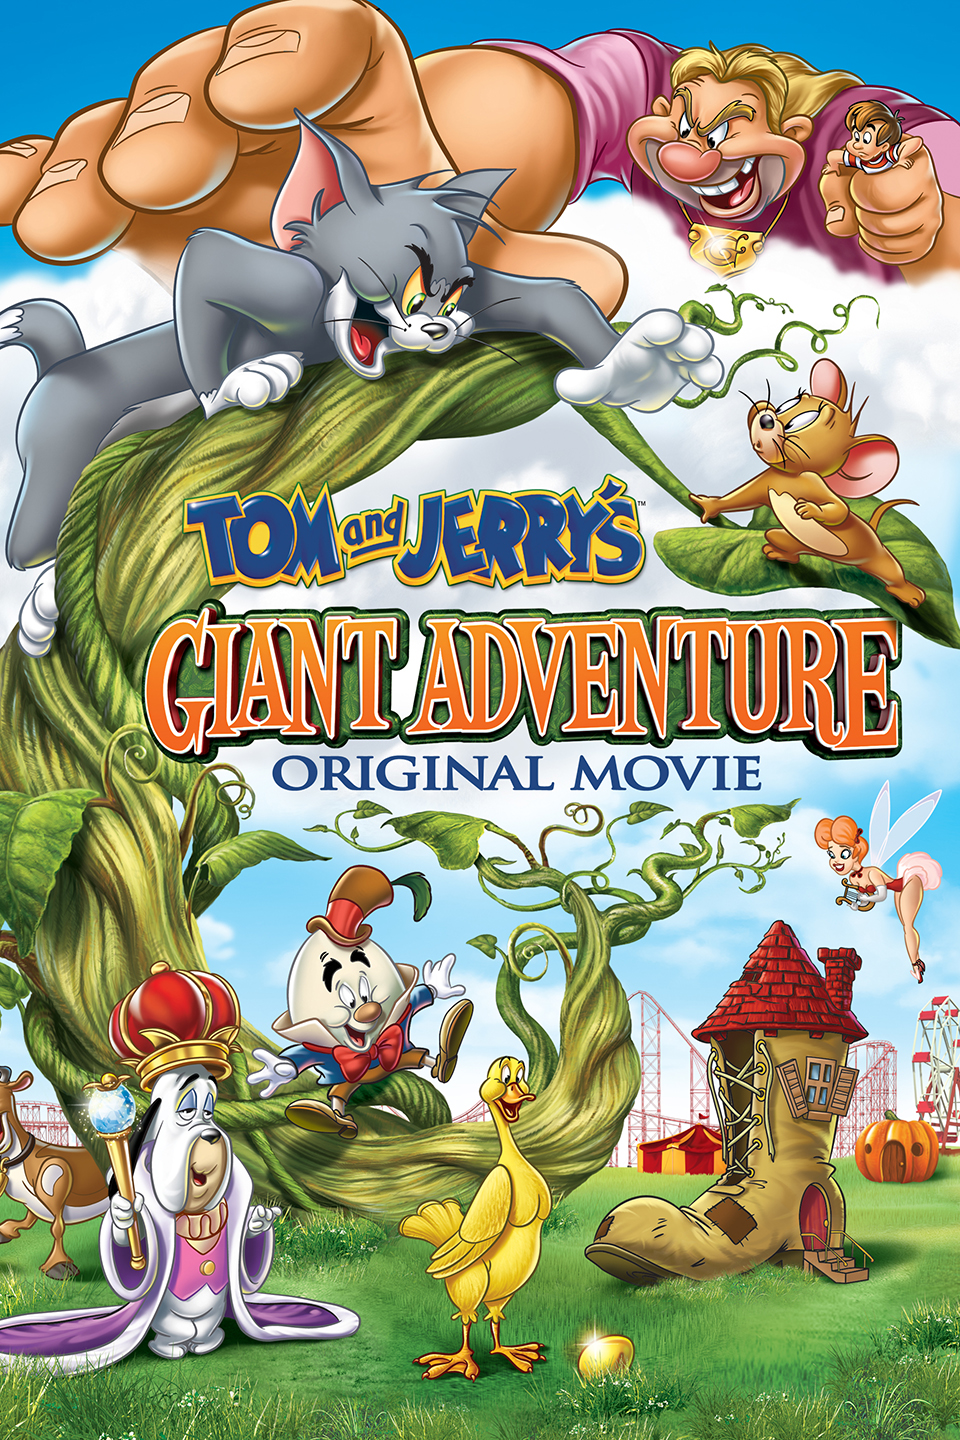 Tom and Jerry's Giant Adventure-Tom and Jerry's Giant Adventure